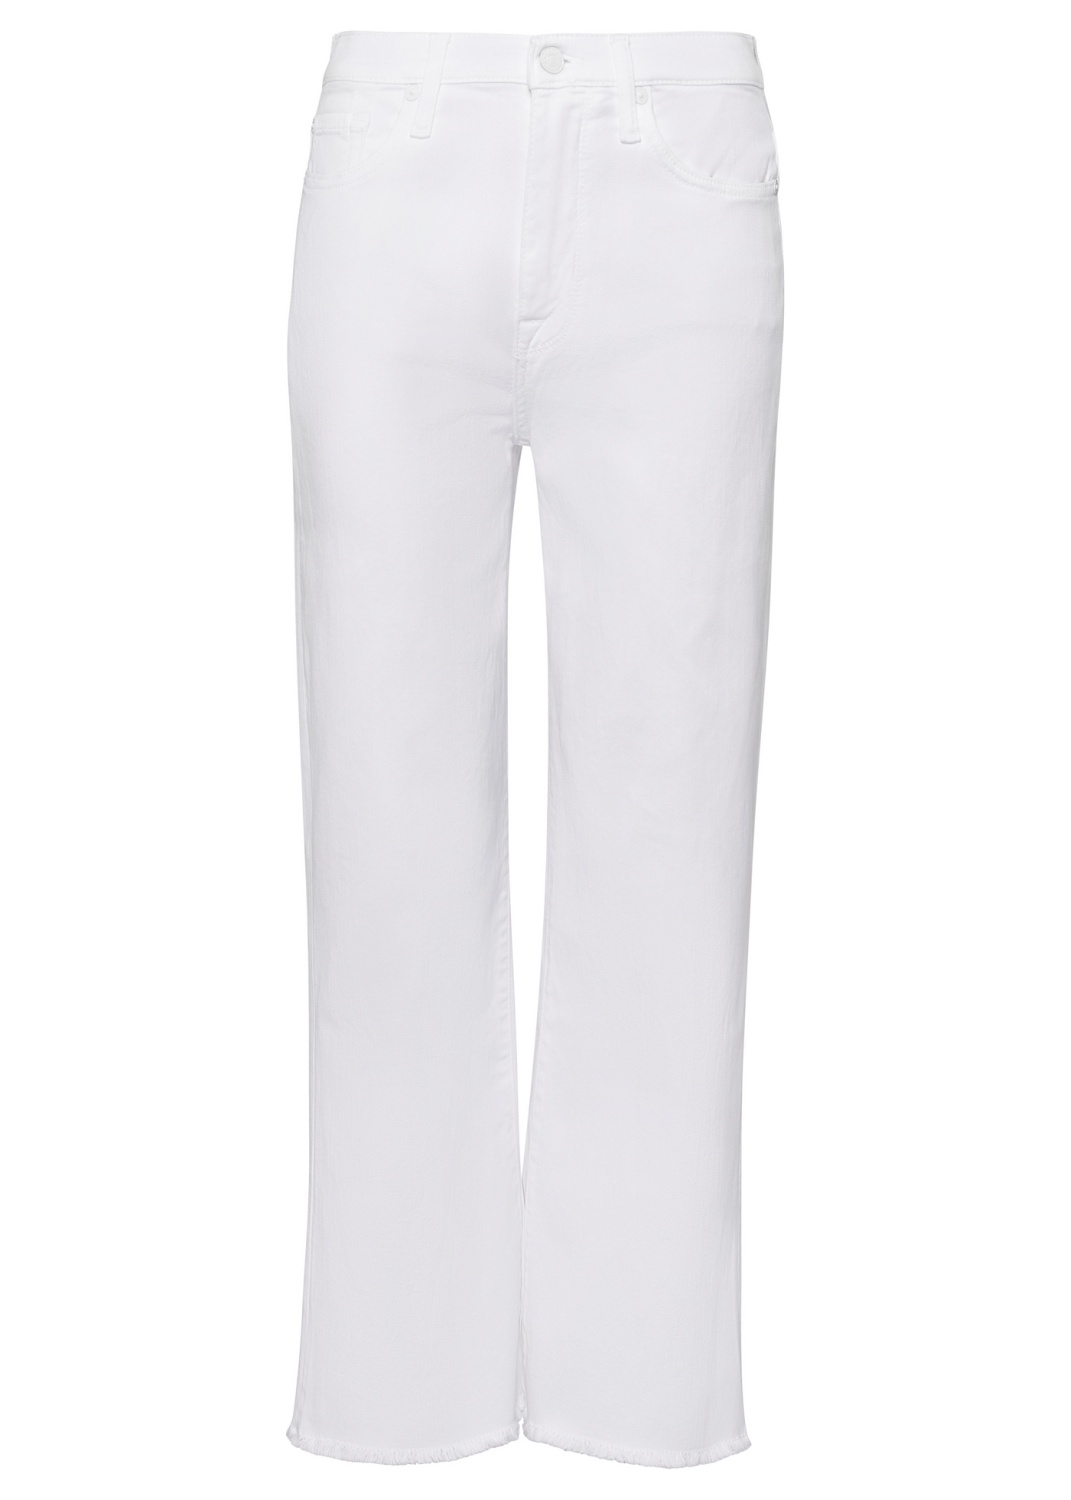 CROPPED ALEXA Left Hand Pure White with Raw Cut Frayed image number 0